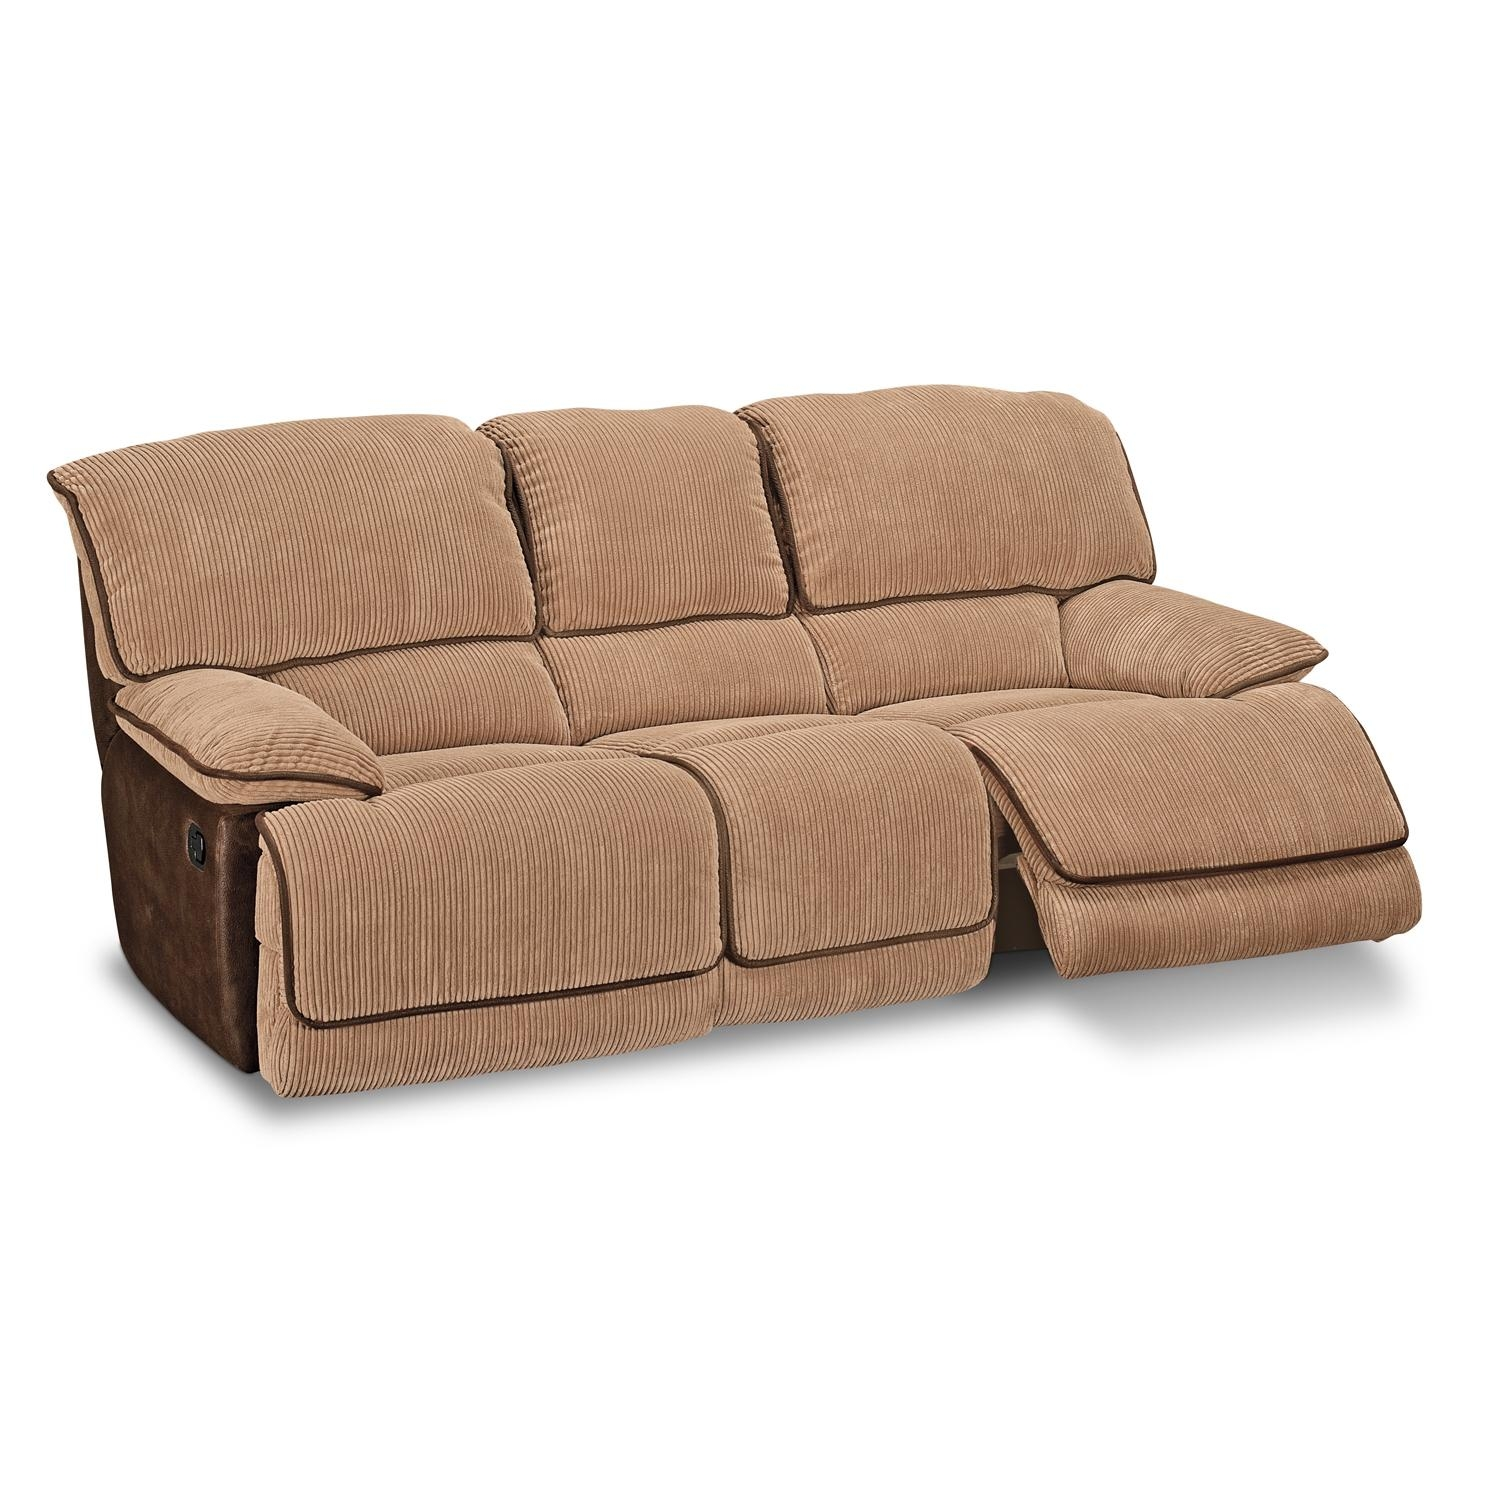 Slipcovers For Recliner Sofa | Sofa Gallery | Kengire In Slipcover For Reclining Sofas (View 2 of 20)